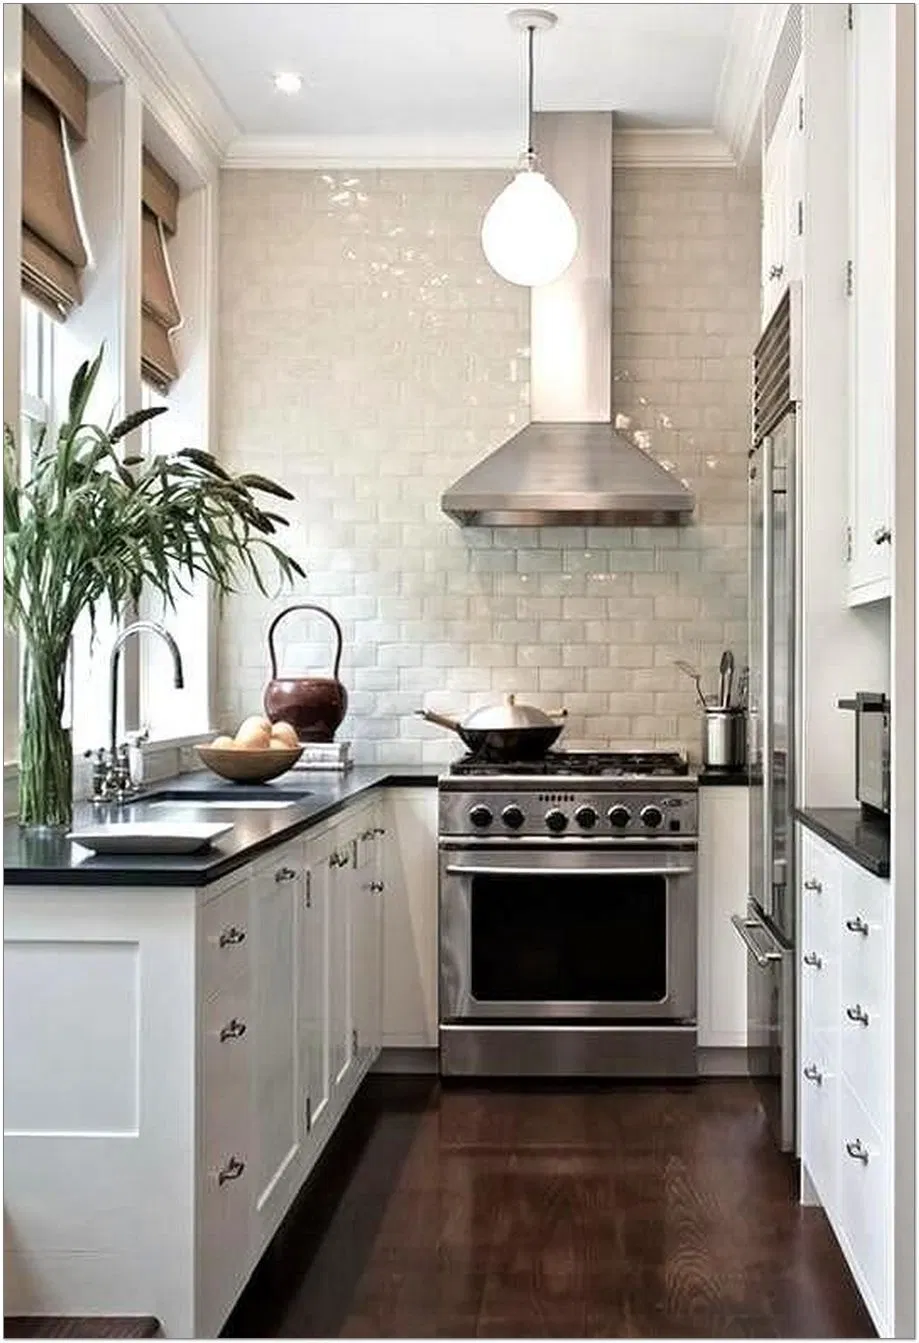 47 Inspiring Kitchen Remodeling Ideas Costs Trends In 2020 1